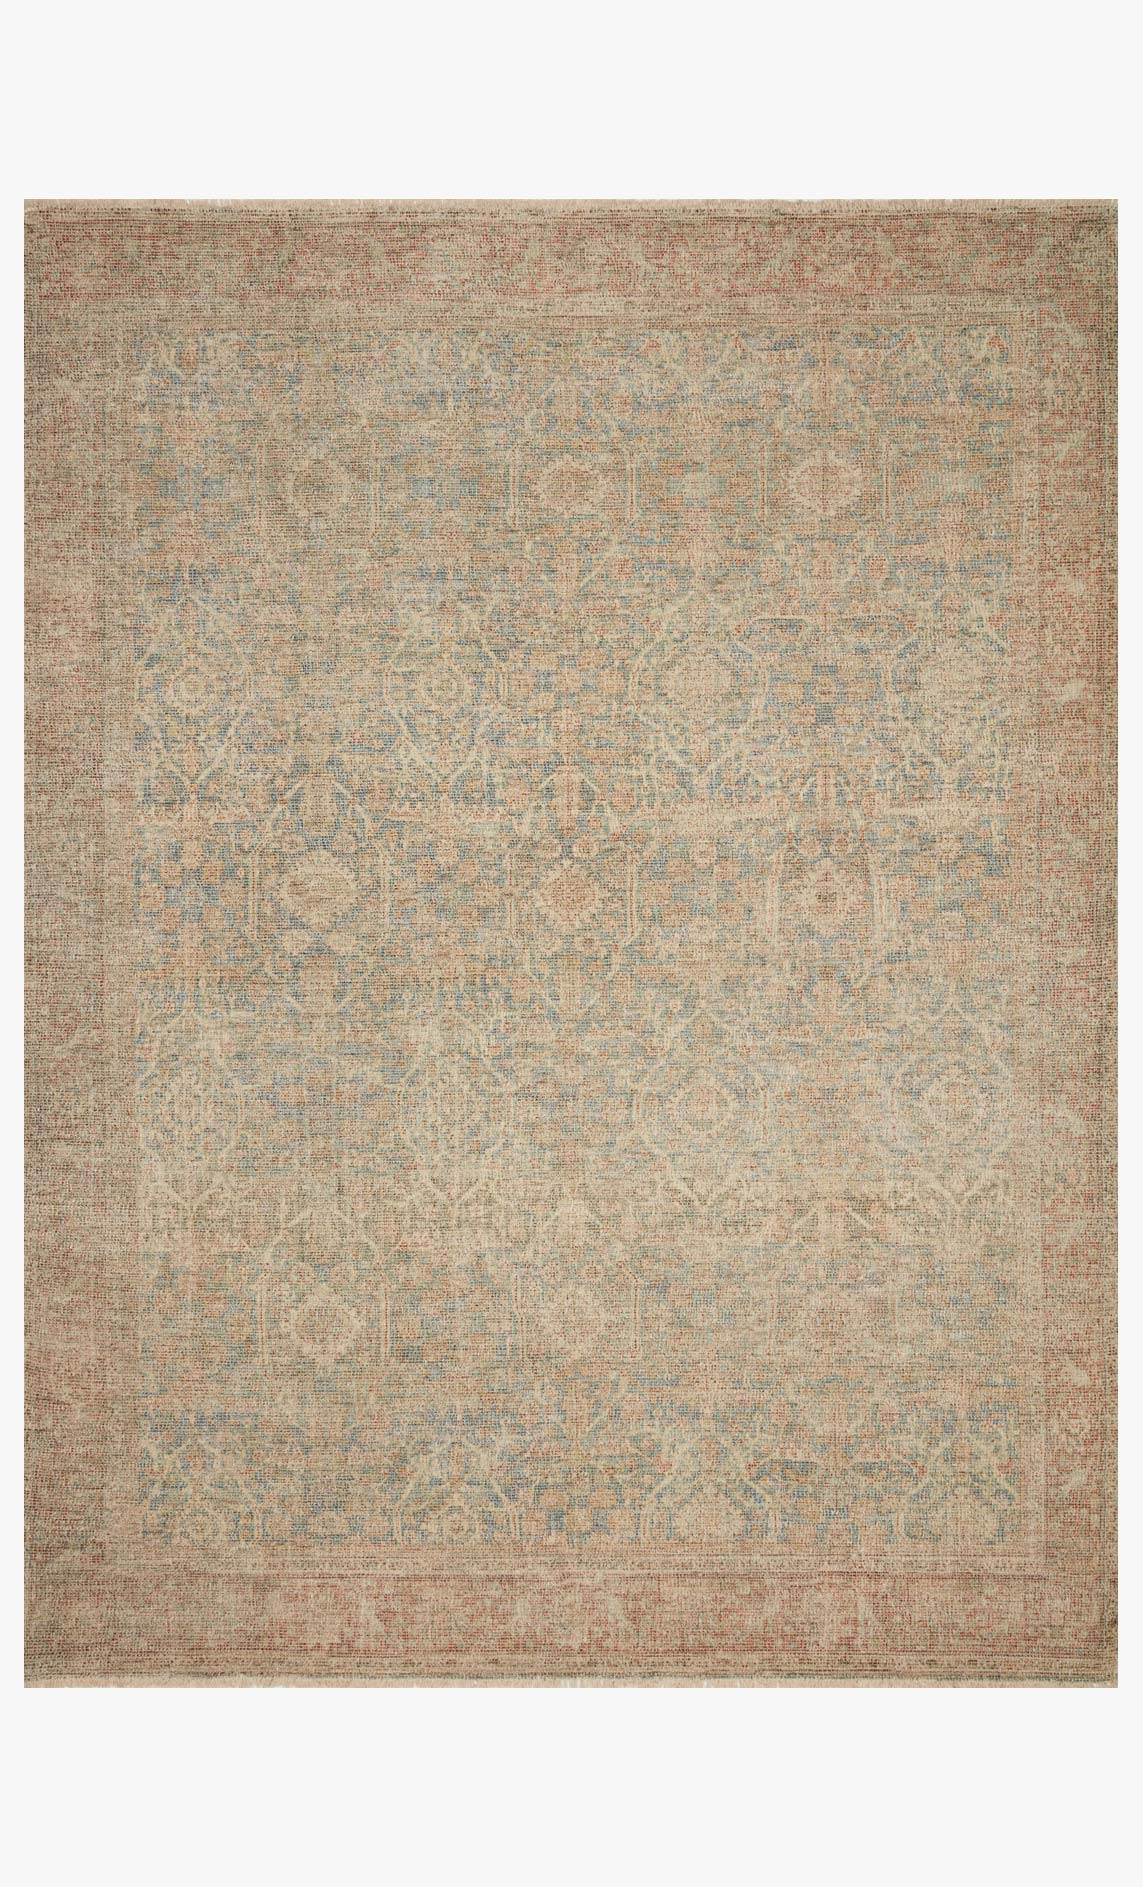 "Loloi PRIYA PRY-06 Denim / Rust Area Rug (8'-6"" x 12')"